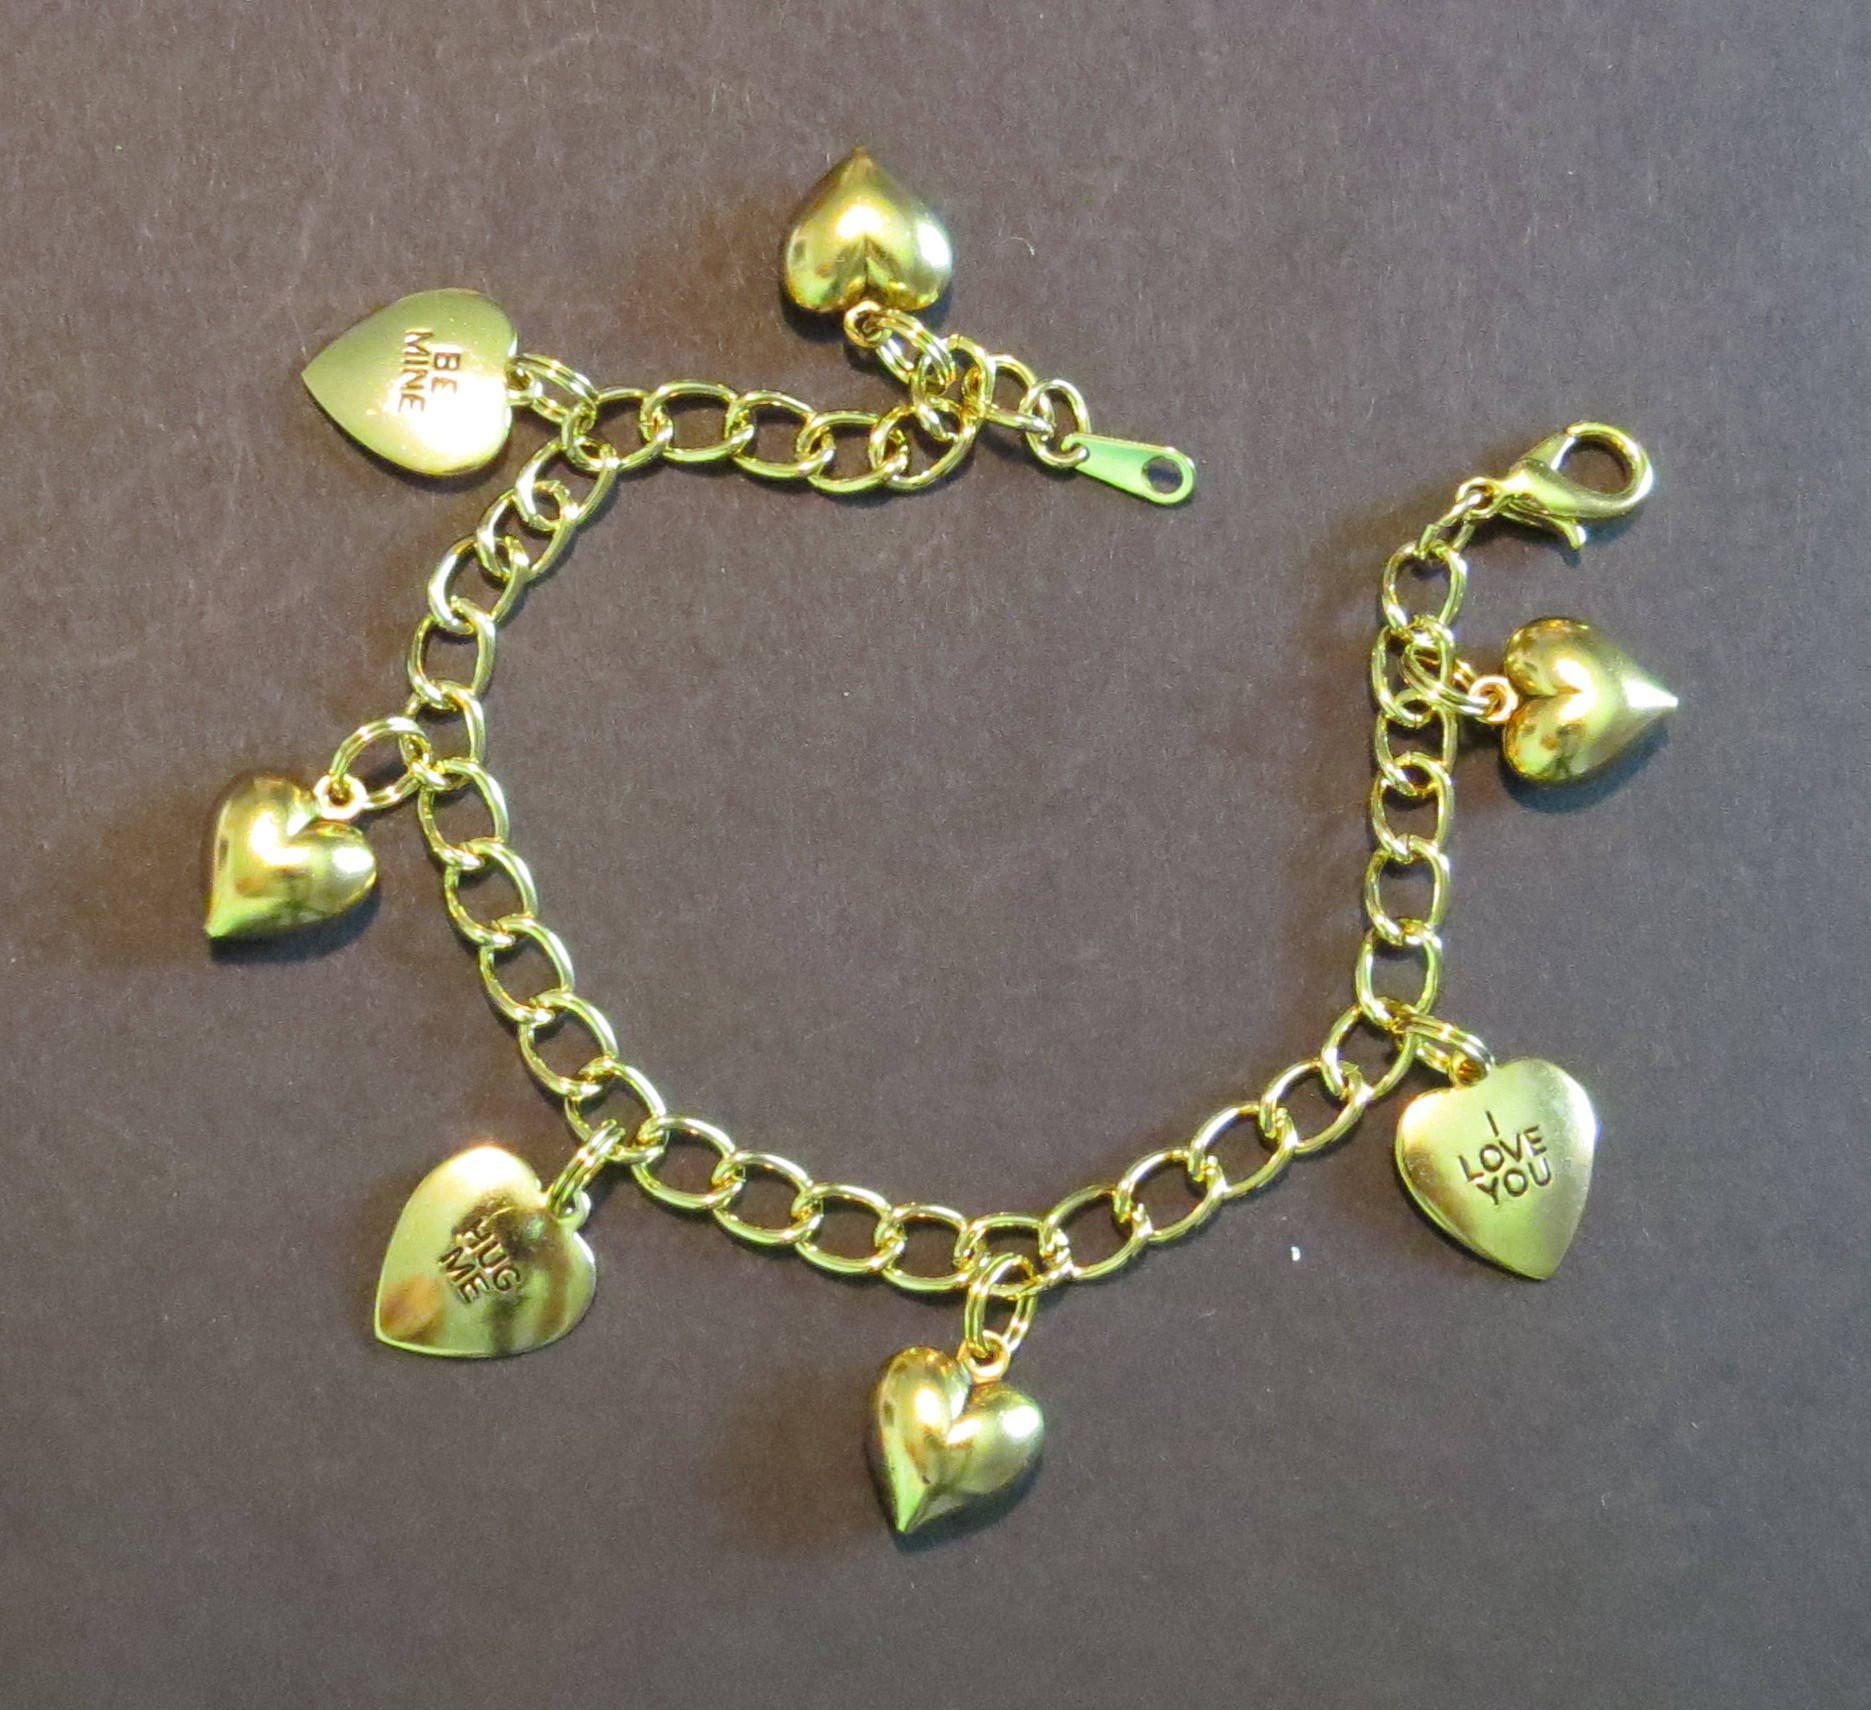 yellow karat id gold j charm bracelets anklet ankle sale at for anklets jewelry z bracelet